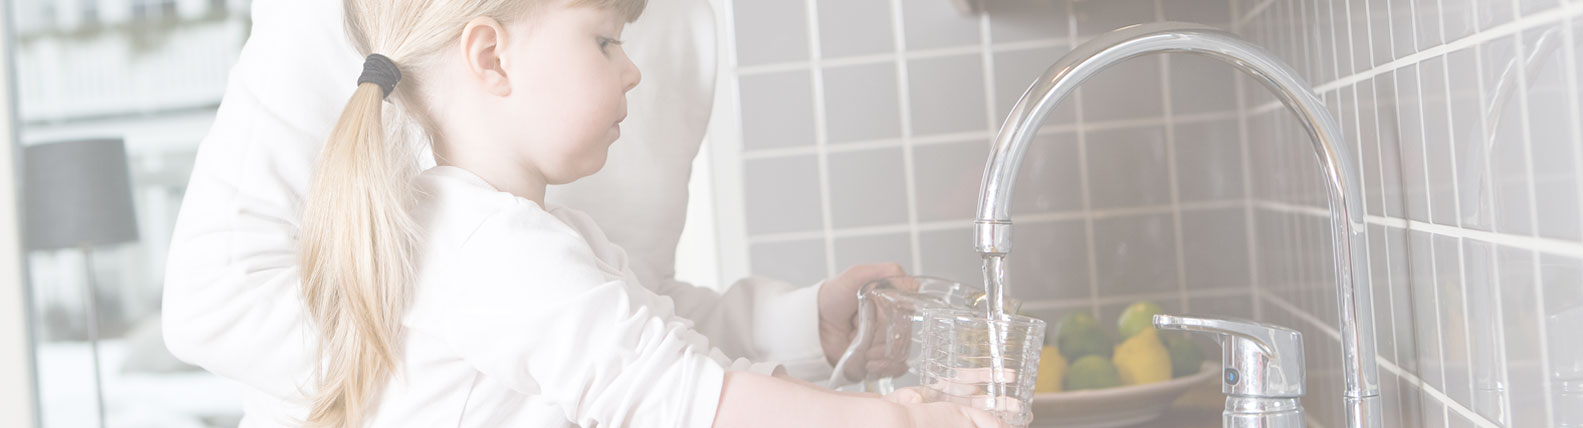 Child Filling Water Jug